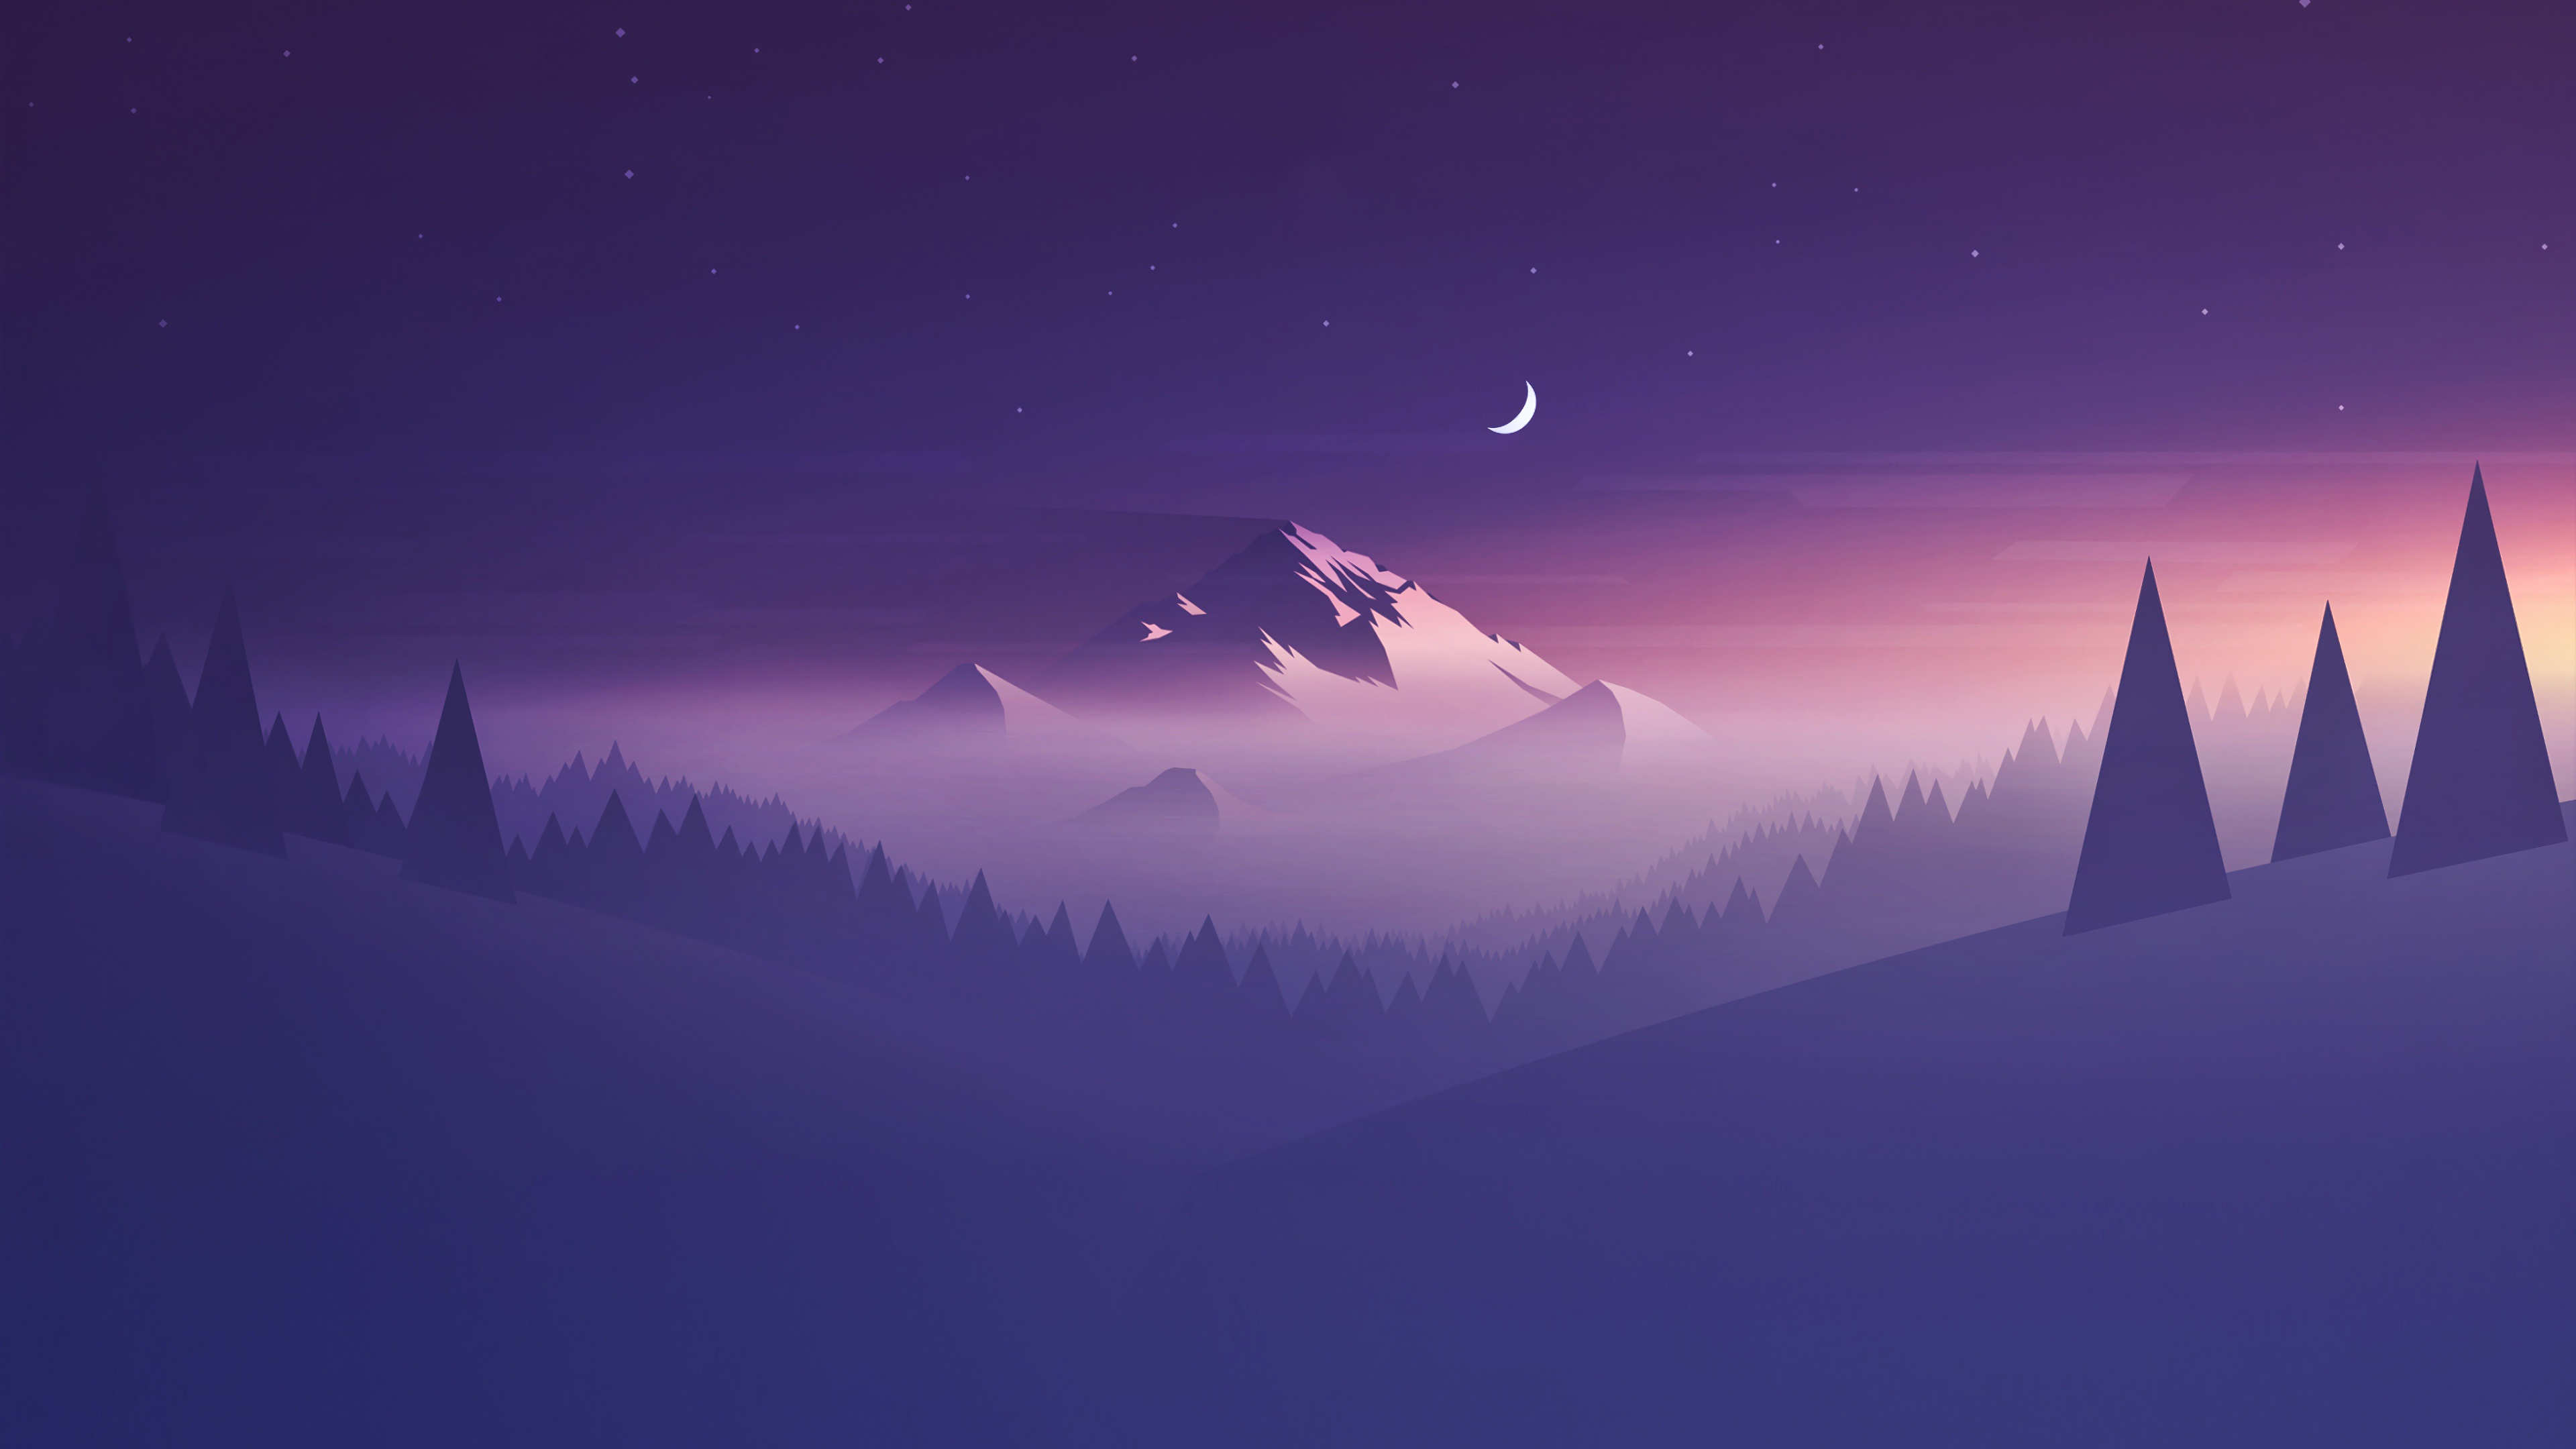 Mountains Minimalists 4k, HD Artist, 4k Wallpapers, Images ...